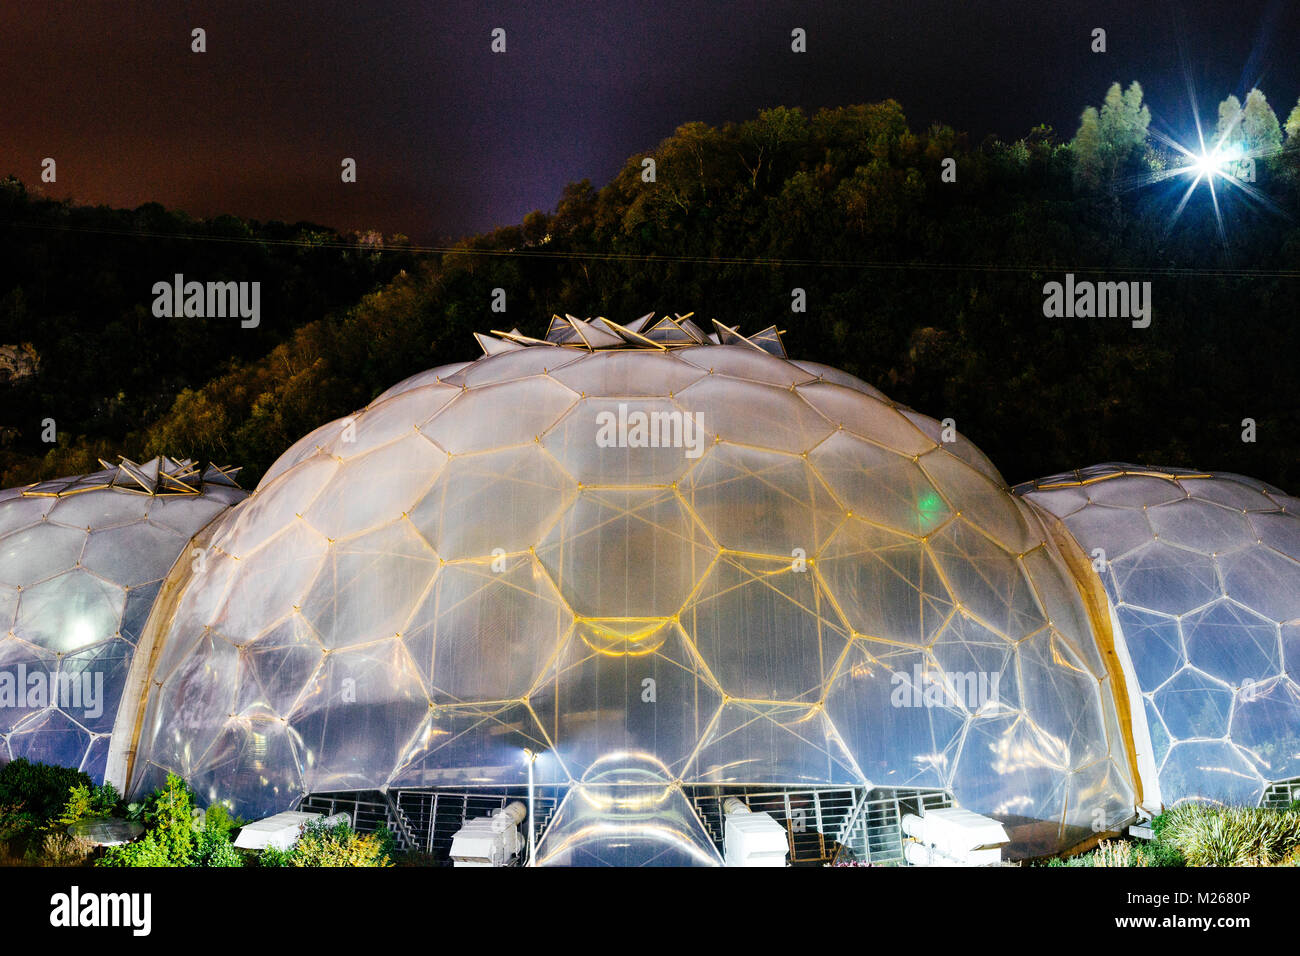 Exterior Shows Of The Eden Project Biomes At Night Bodelva Cornwall United Kingdom